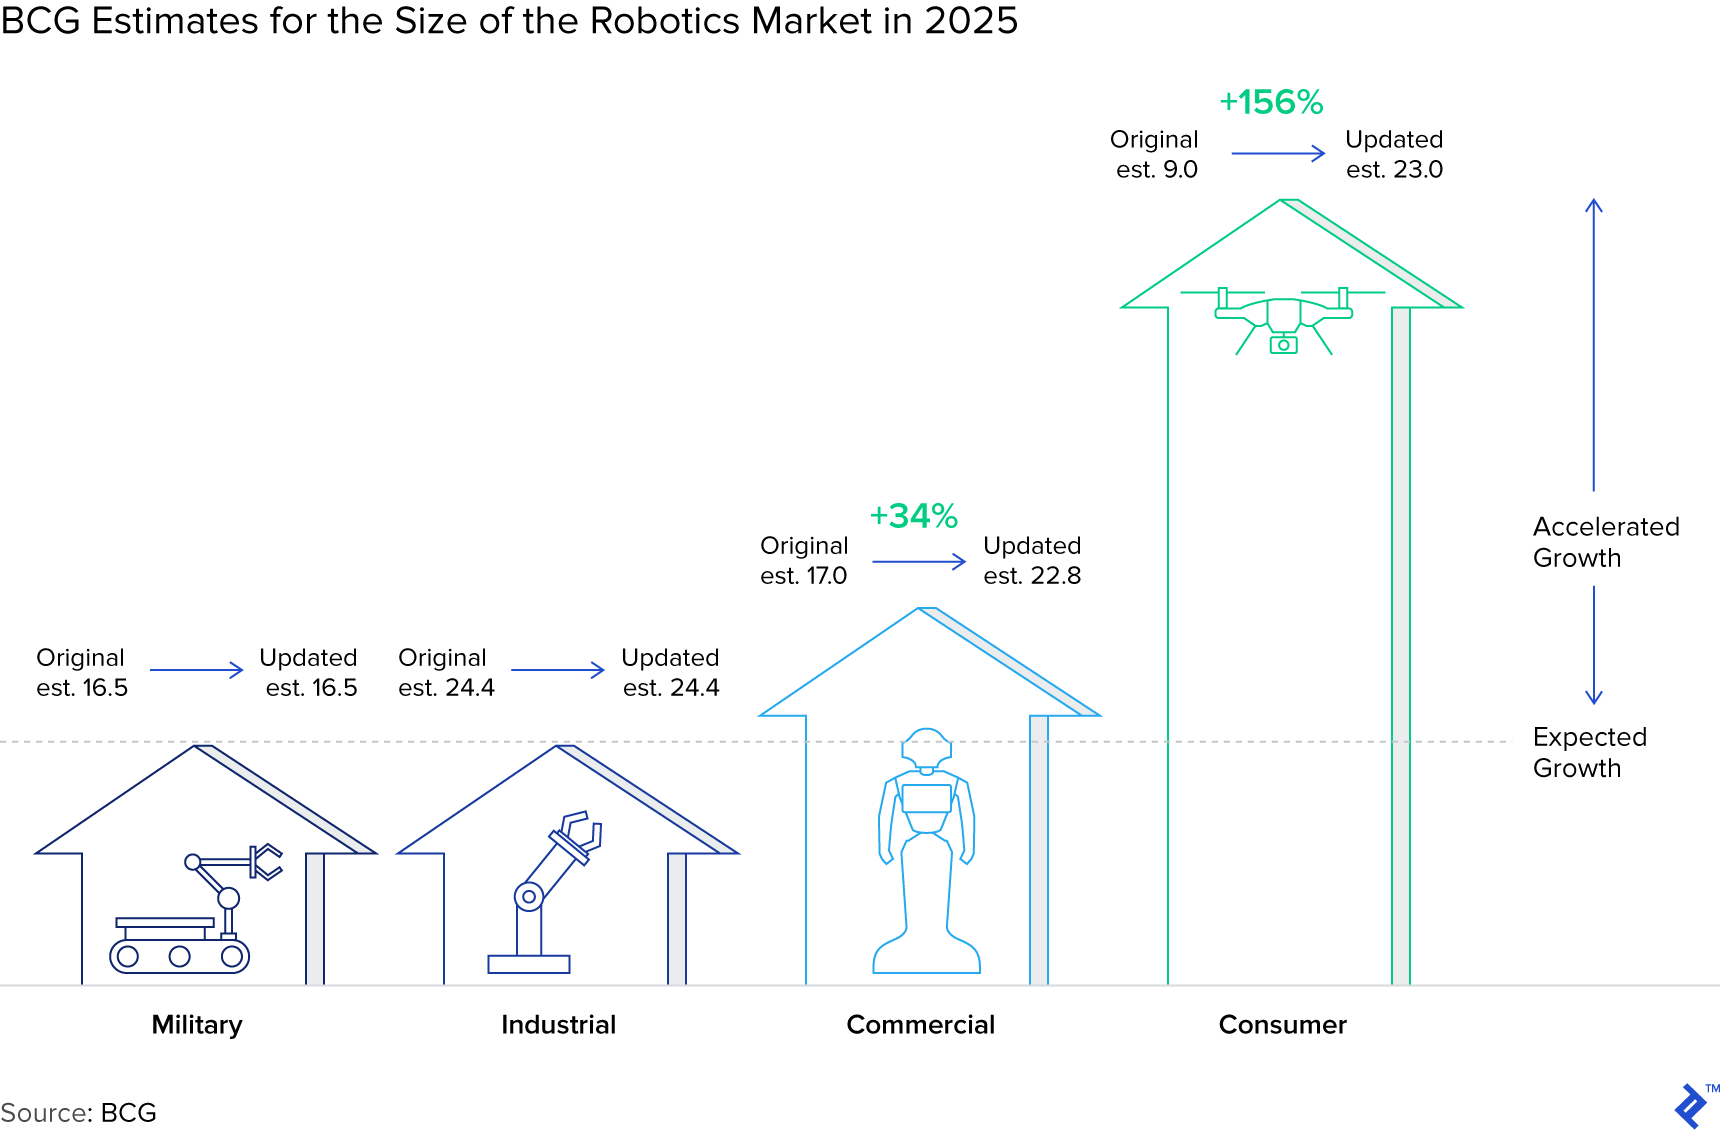 BCG Estimates for the Size of the Robotics Market in 2025